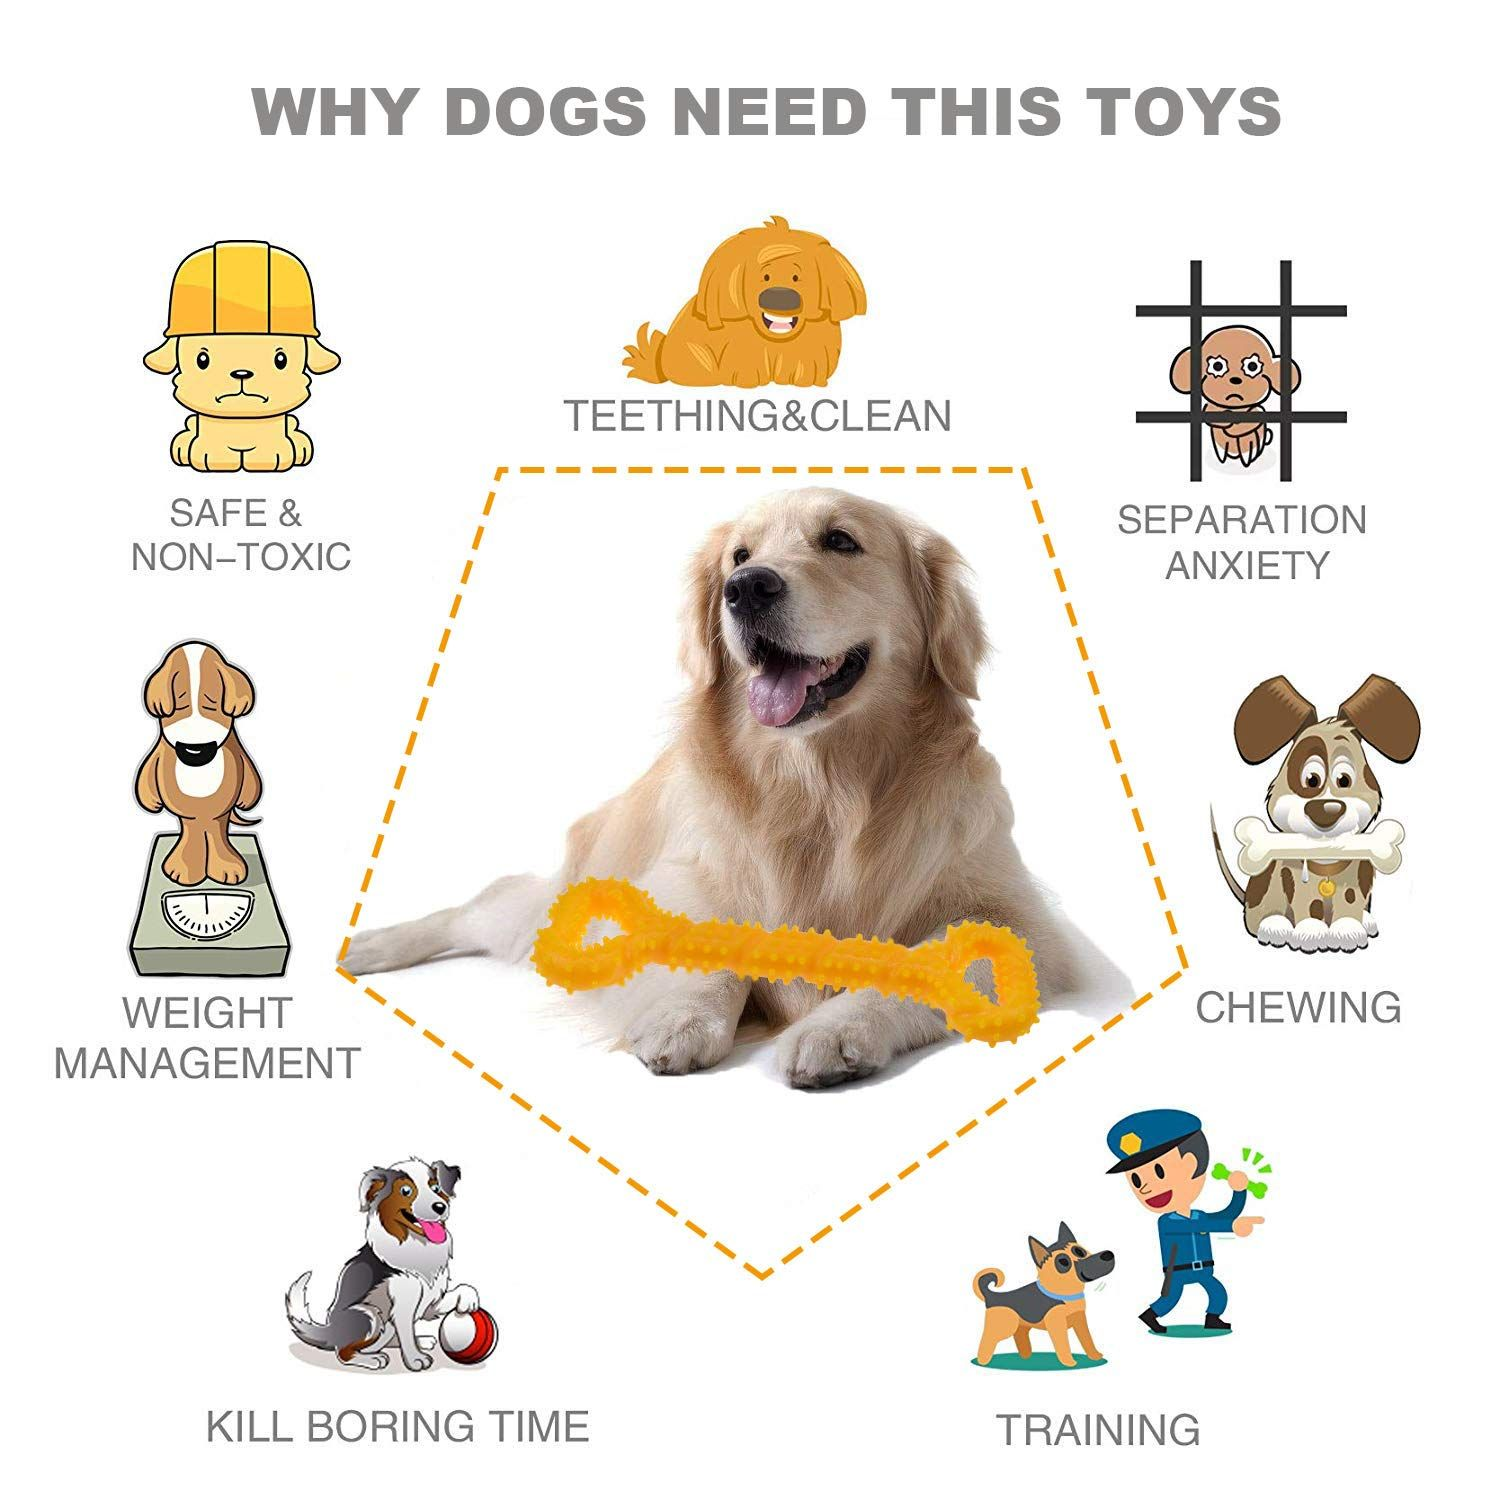 Amazon Com Blueisland Durable Dog Chew Toys 13 Inch Bone Shape Extra Large Dog Toys With Convex Design Strong Tug Toy For A Dog Toys Online Pet Supplies Dogs